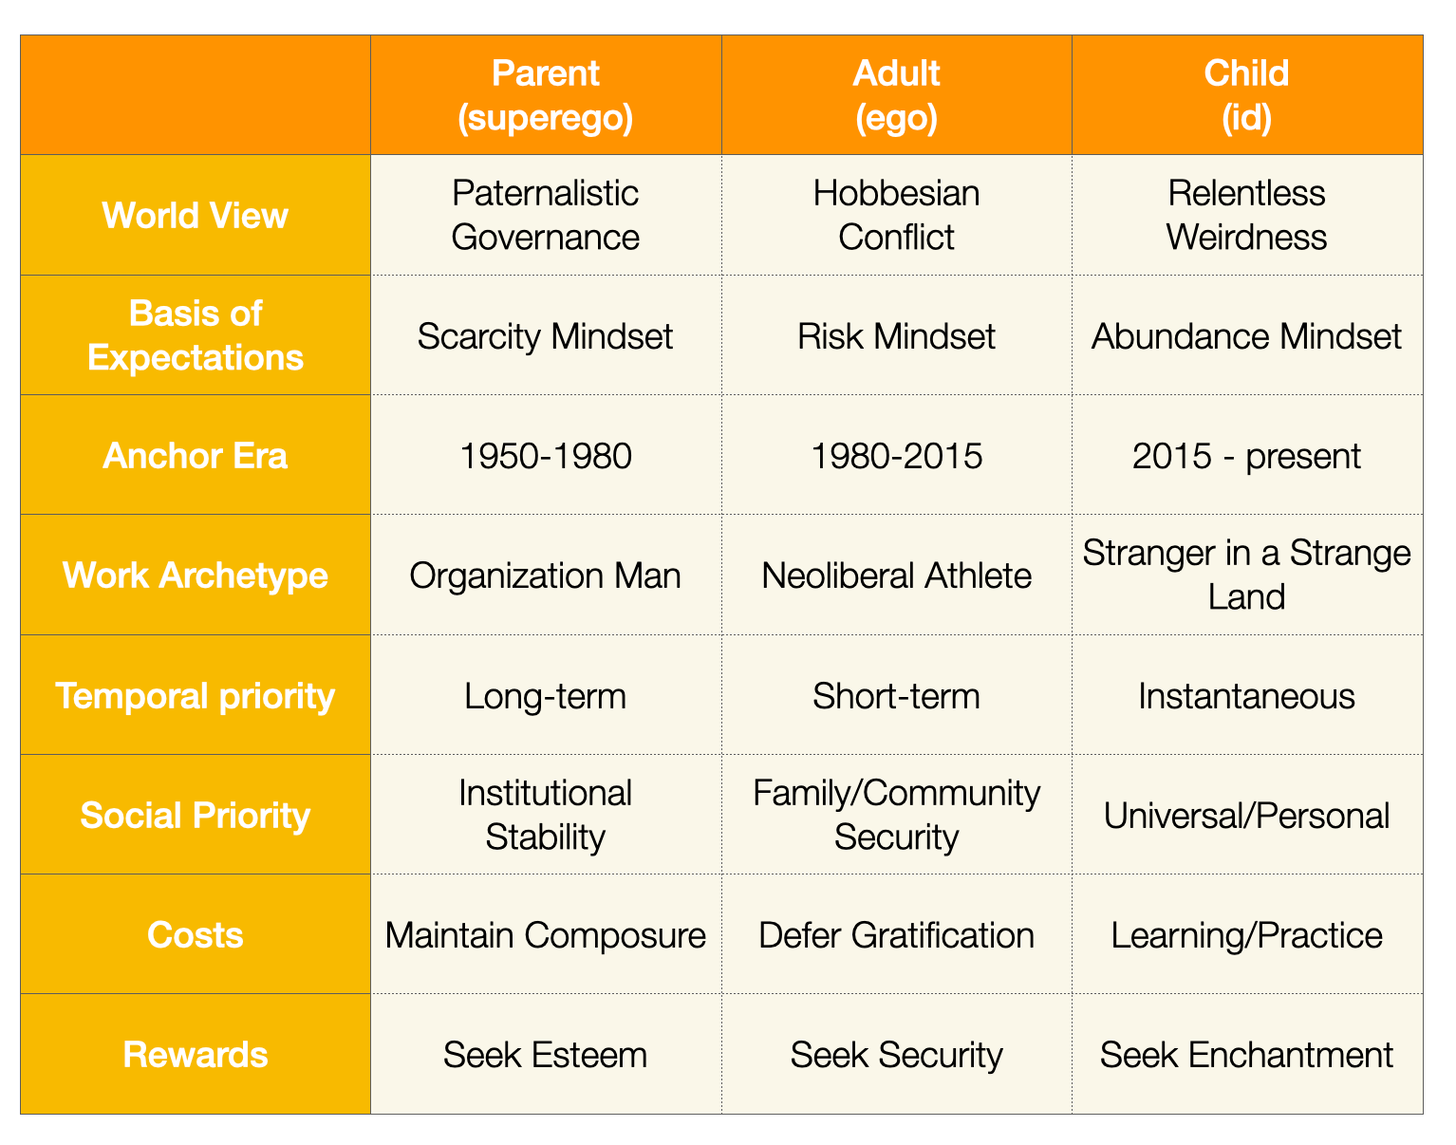 A comparison table of three psyche dimmensions: Parent (superego), Adult (ego), Child (id), across eight elements, including World View, Work Archetype, Rewards